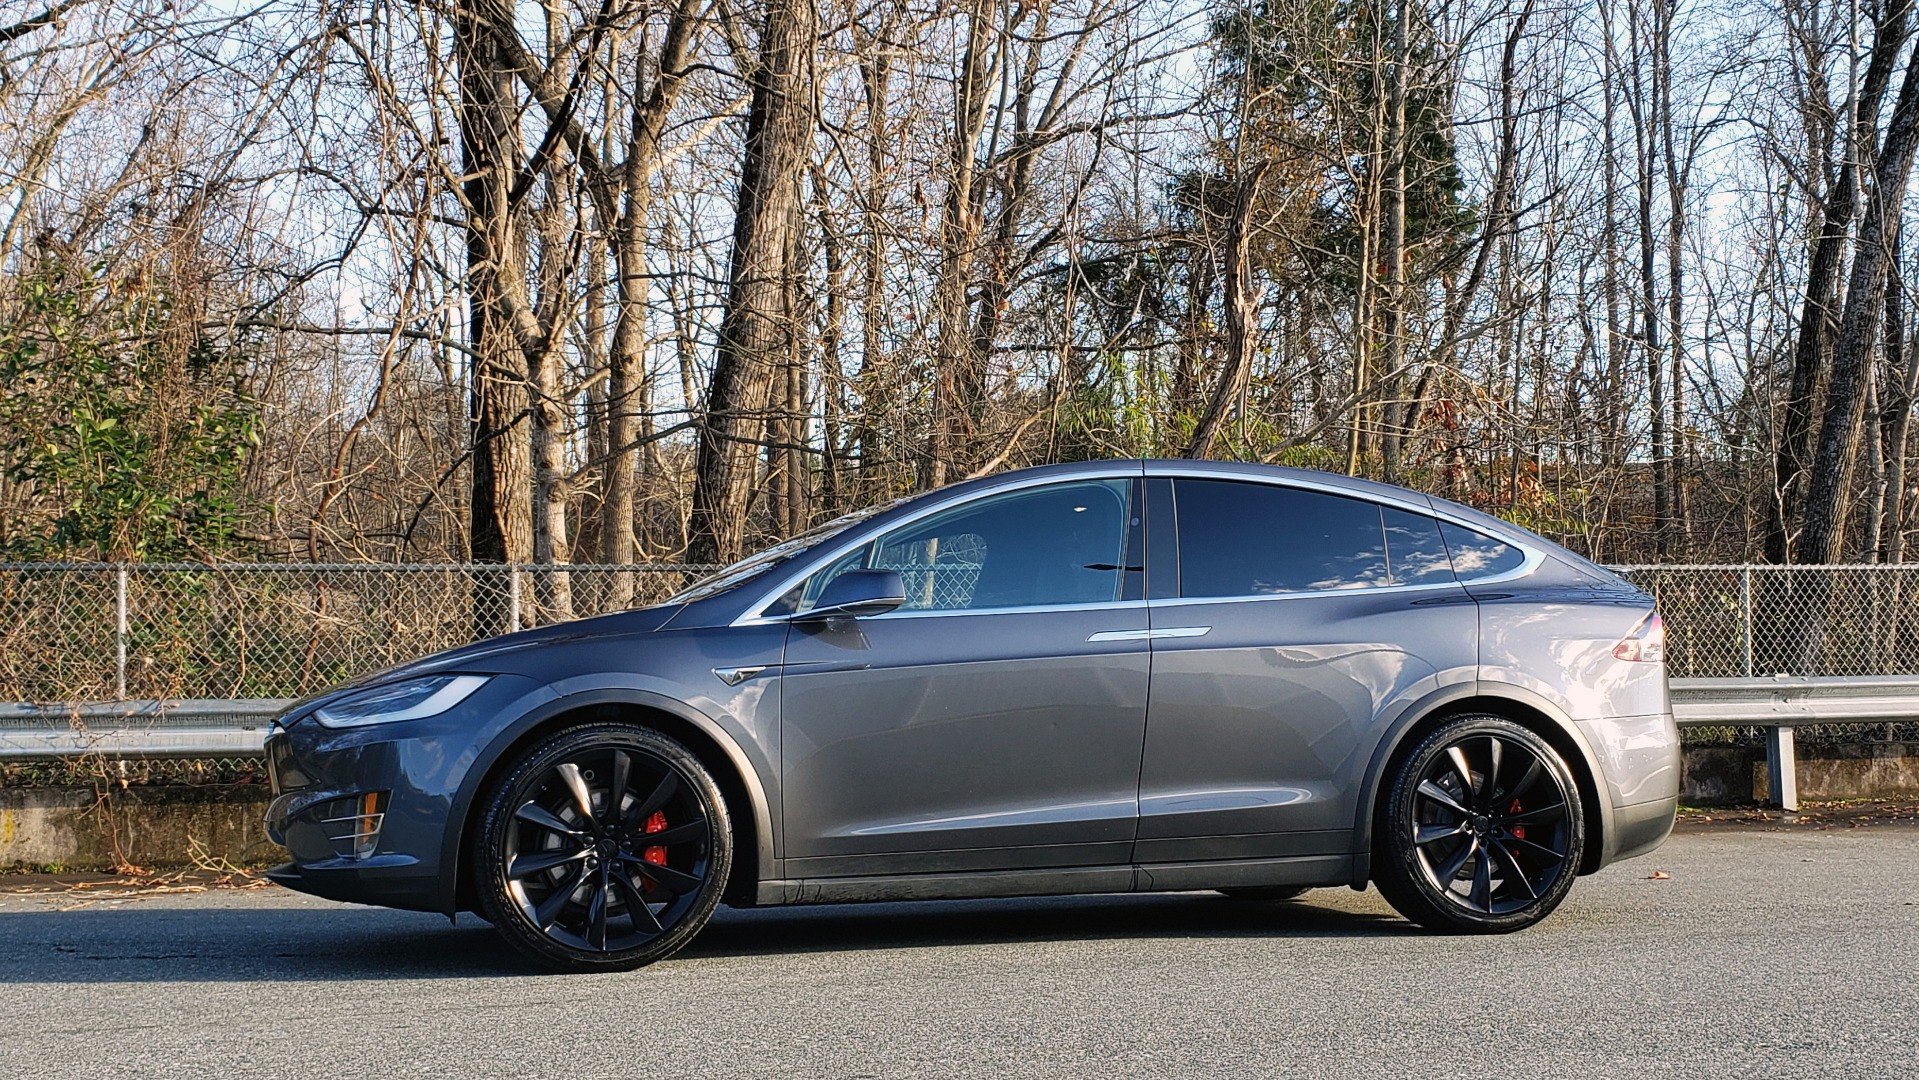 Used 2016 Tesla MODEL X P100D LUDICROUS PERF / PREM / TECH / AUTO PILOT / TOWING for sale Sold at Formula Imports in Charlotte NC 28227 5